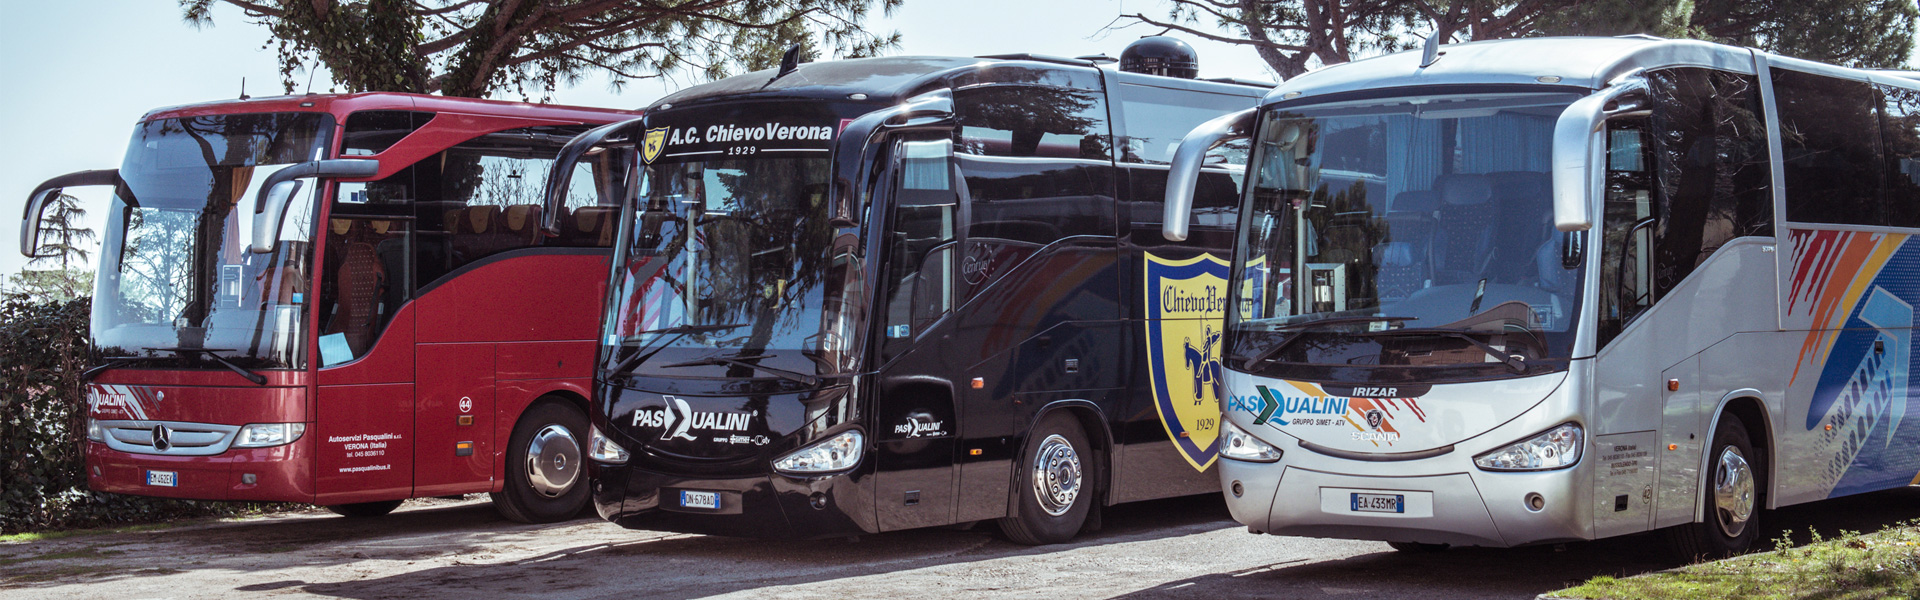 preventivi header- pasqualini bus verona 2